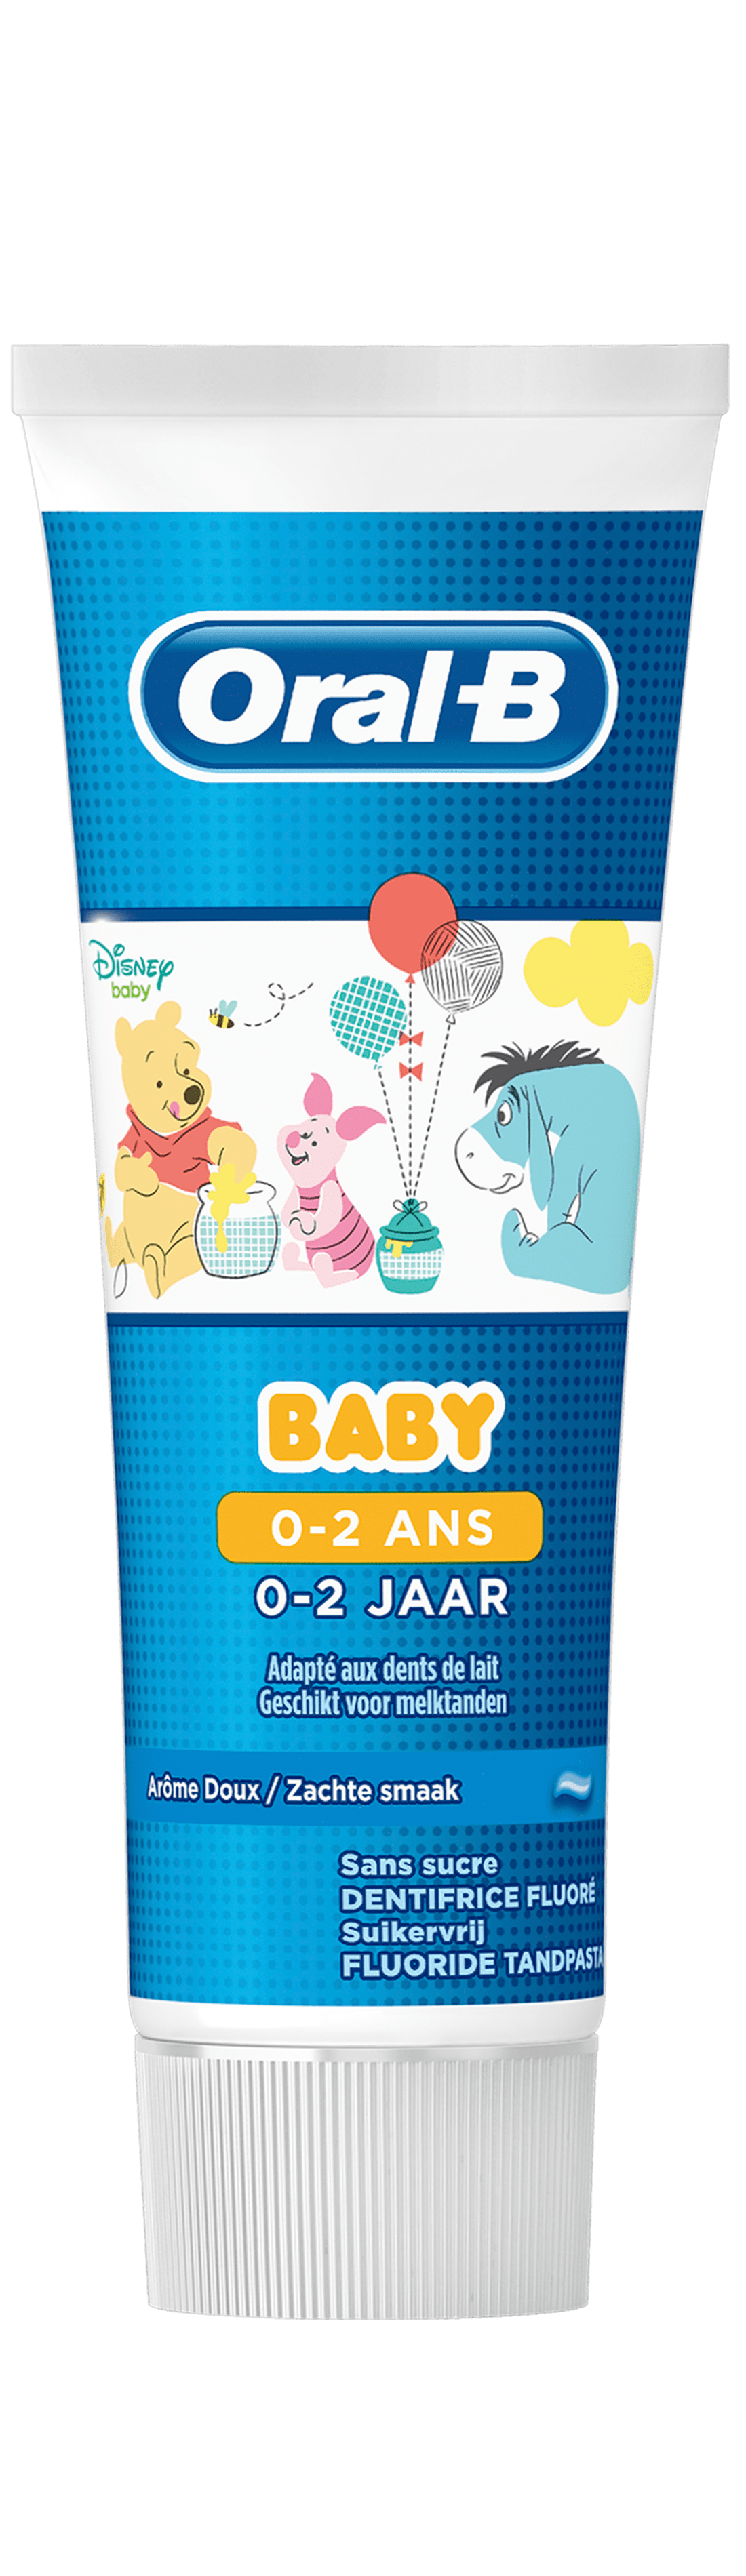 Oral-B Baby Winnie De Poeh Tandpasta 75 ml